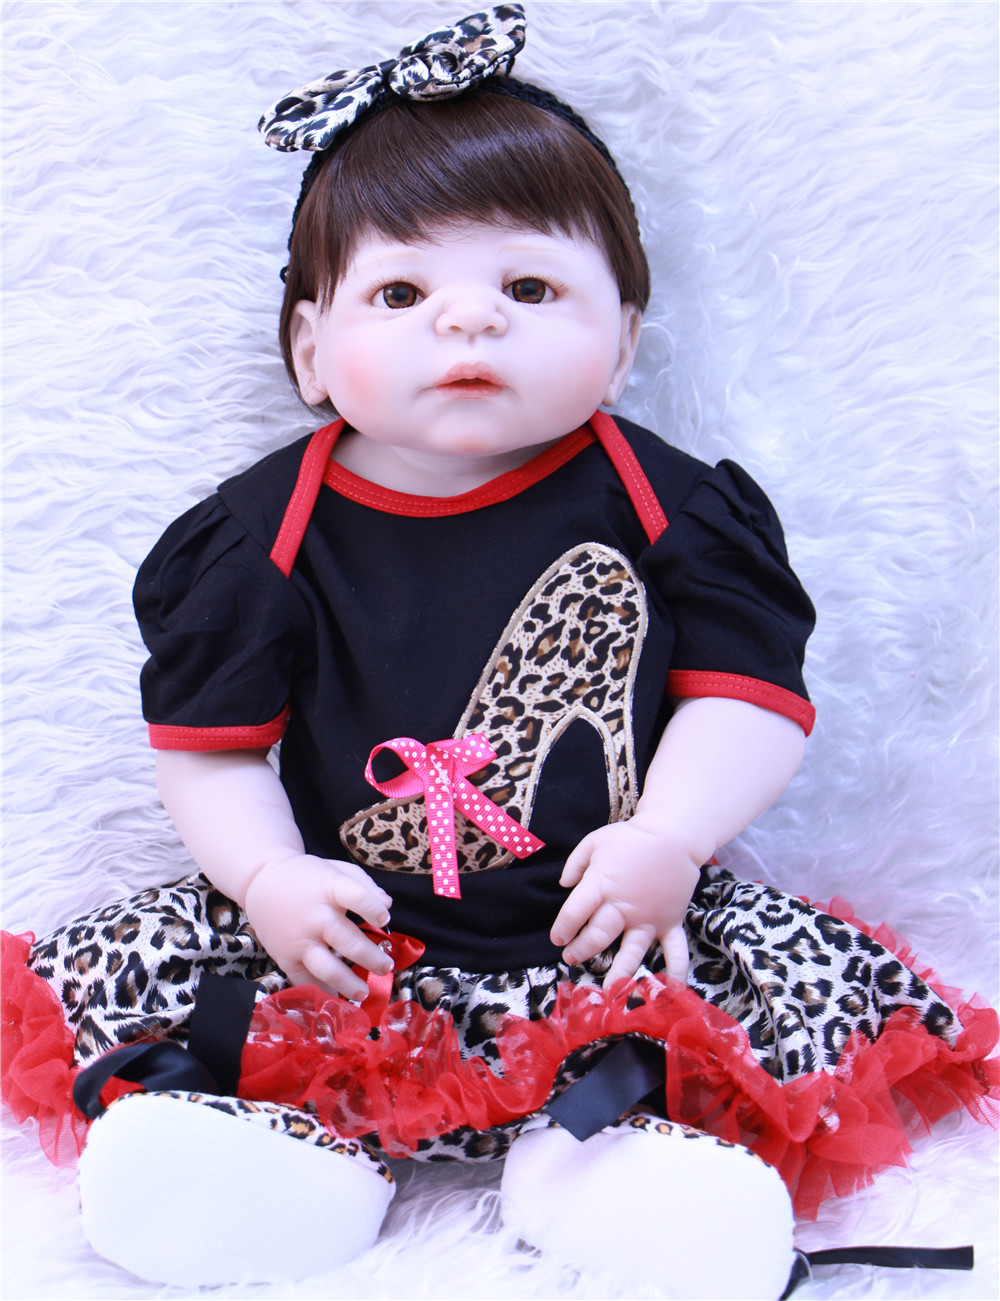 bebe reborn doll girl Full Body silicone reborn baby dolls 55cm Reborn babies Toys Lifelike baby born Child Christmas Gift health non toxic bebe reborn realista new born full body silicone reborn baby dolls girls lifelike doll play house toy gift doll